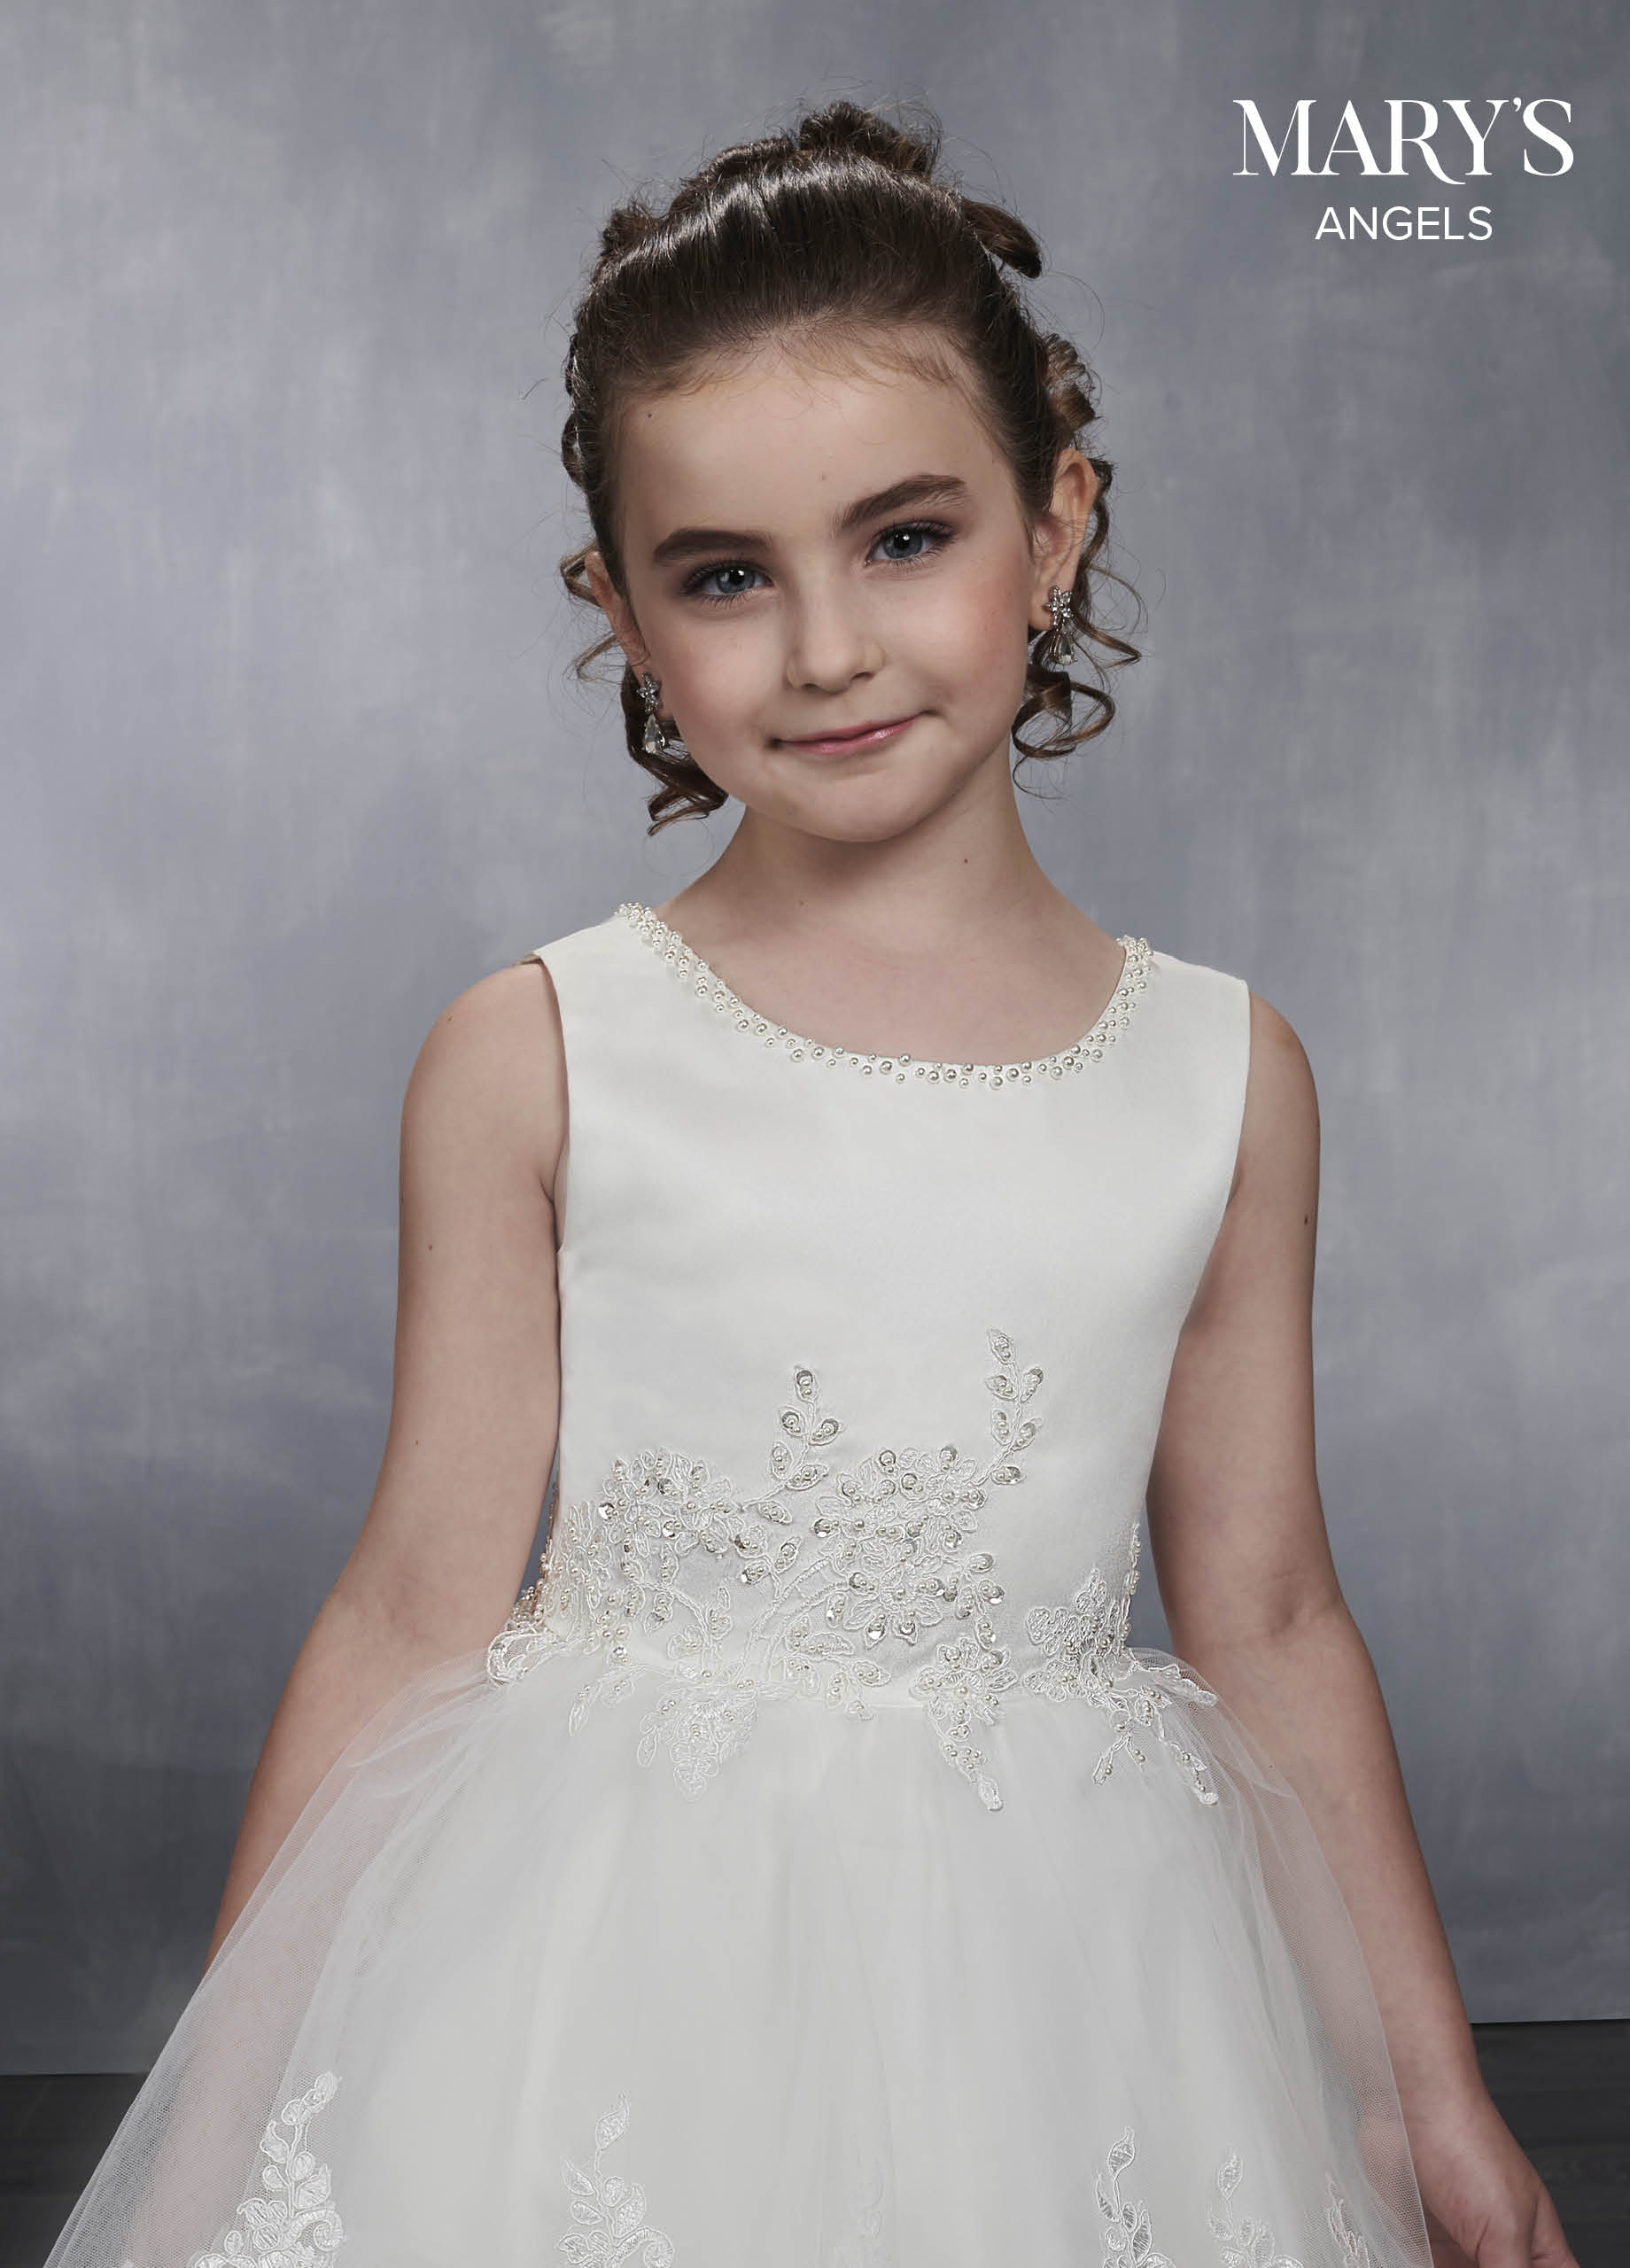 Angel Flower Girl Dresses   Mary's Angels   Style - MB9030